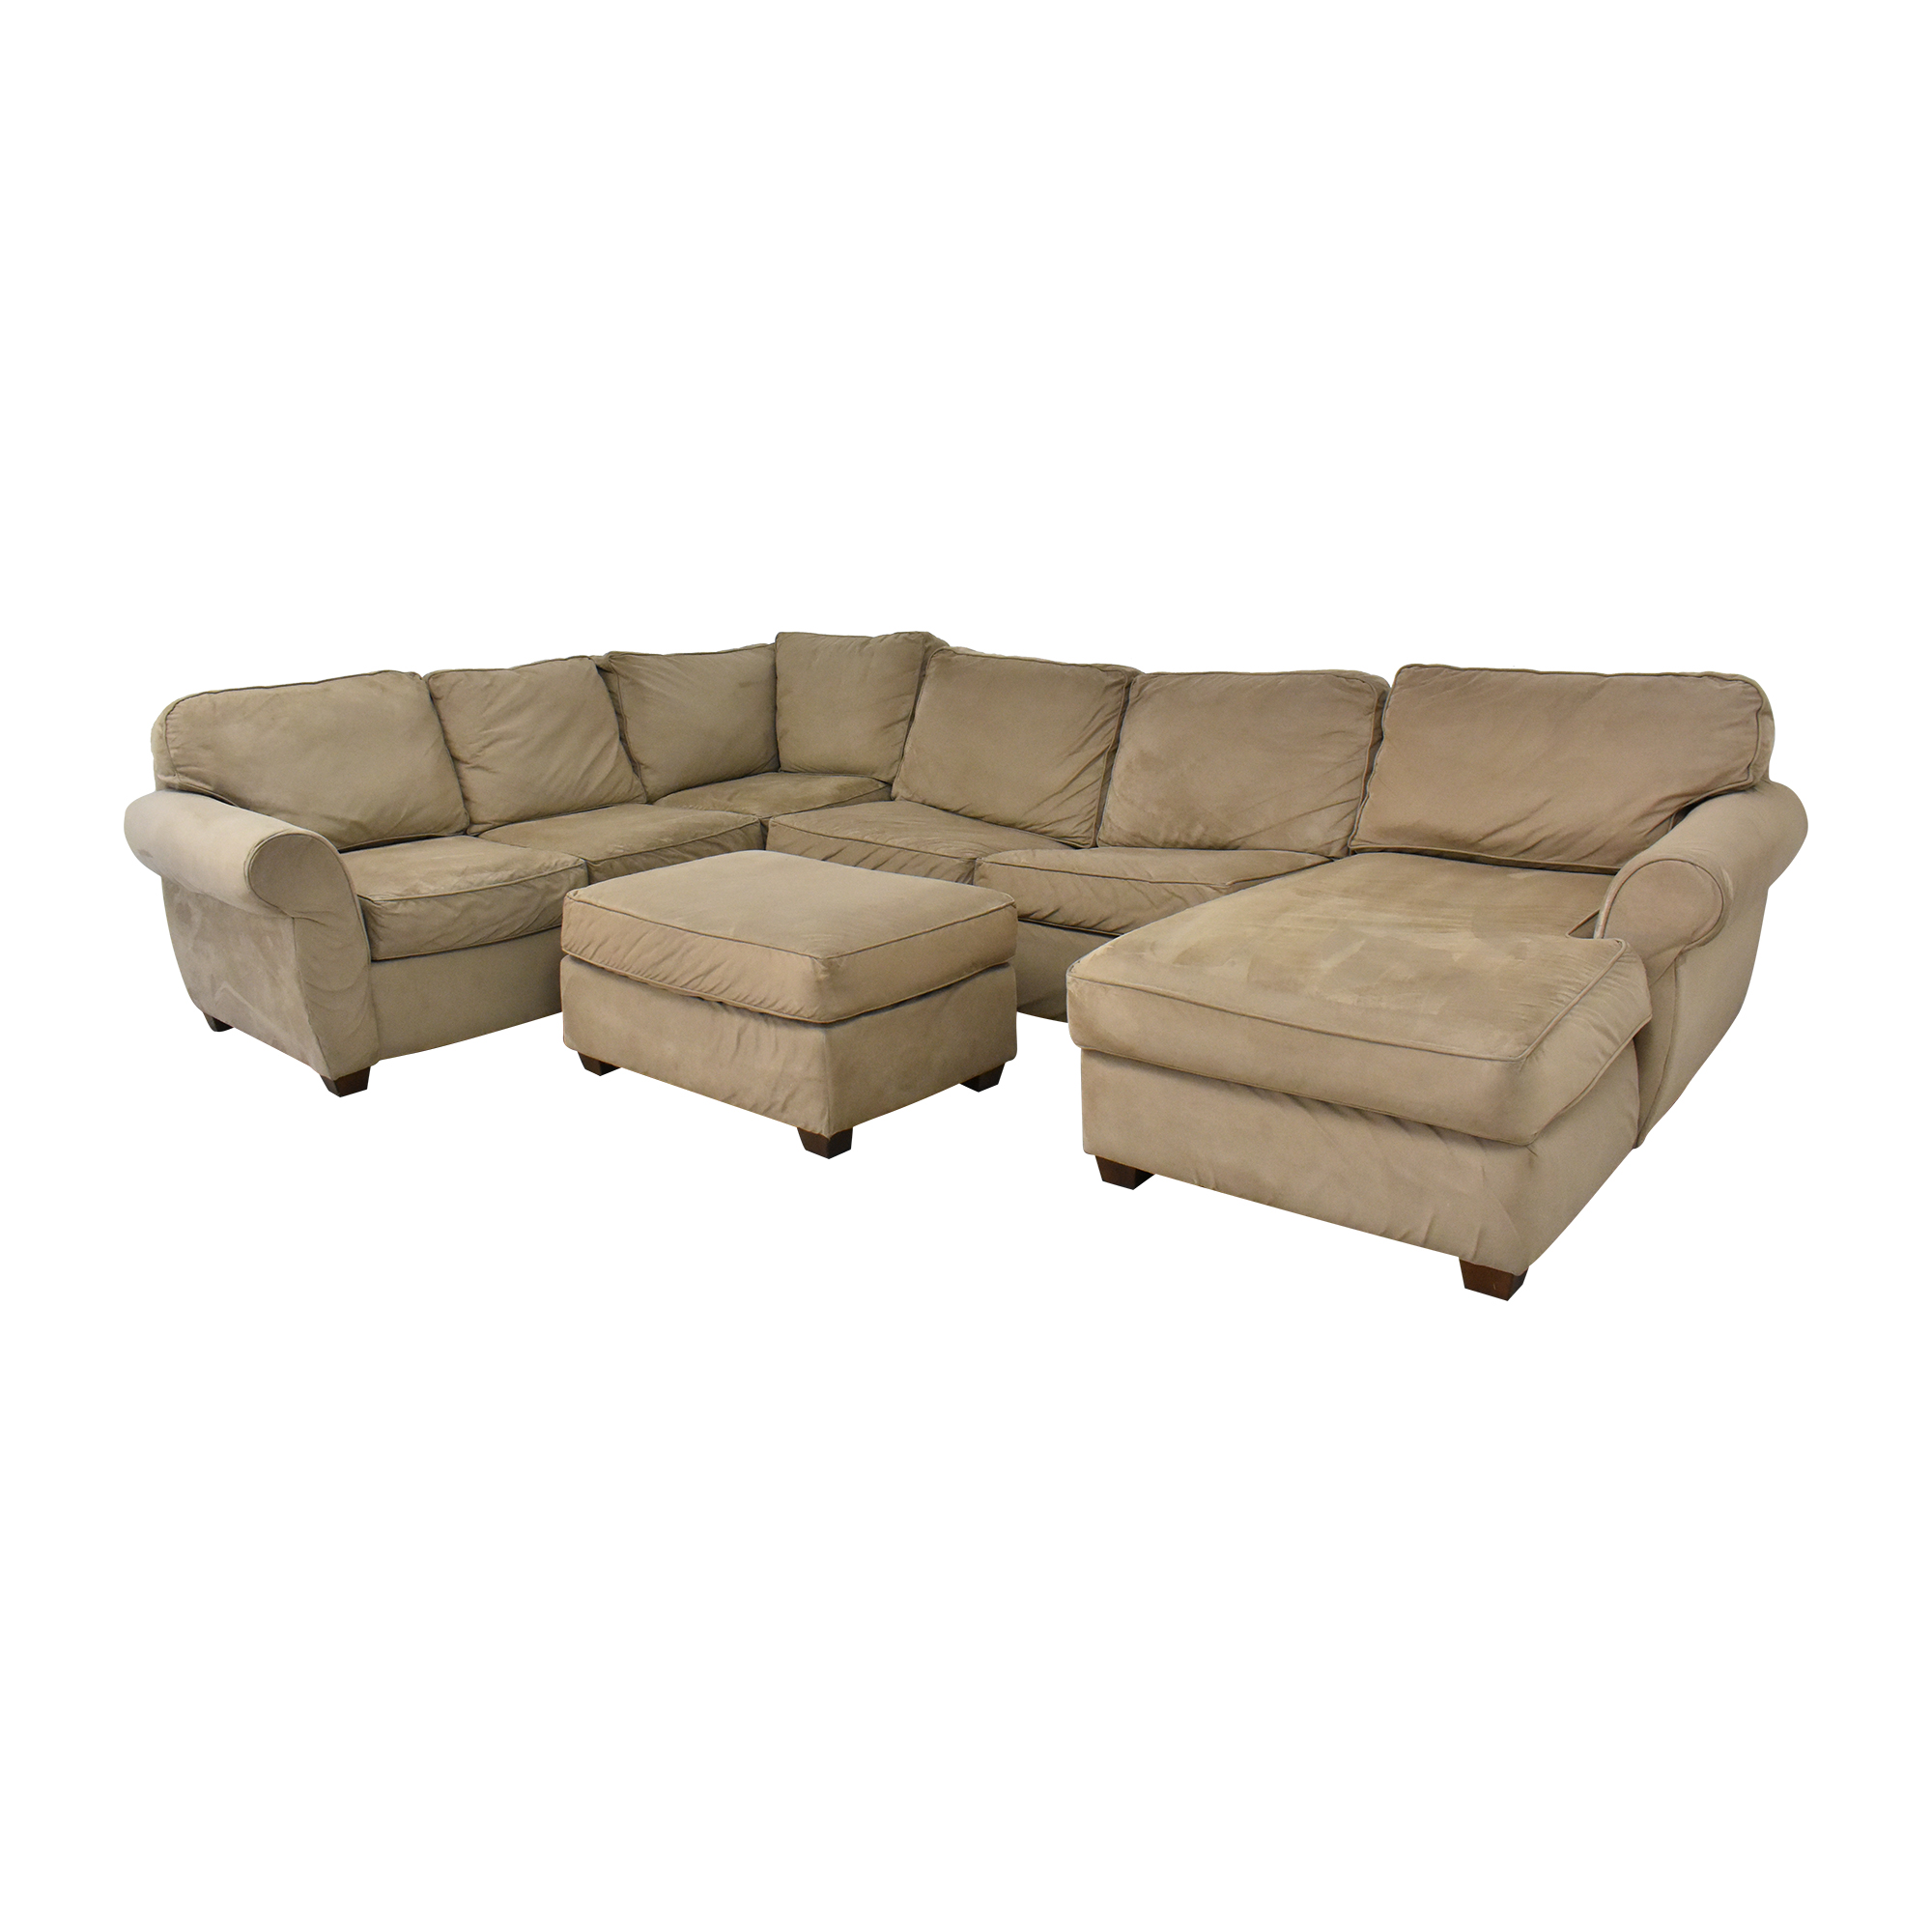 Macy's Macy's Chaise Sectional Sleeper Sofa with Ottoman for sale